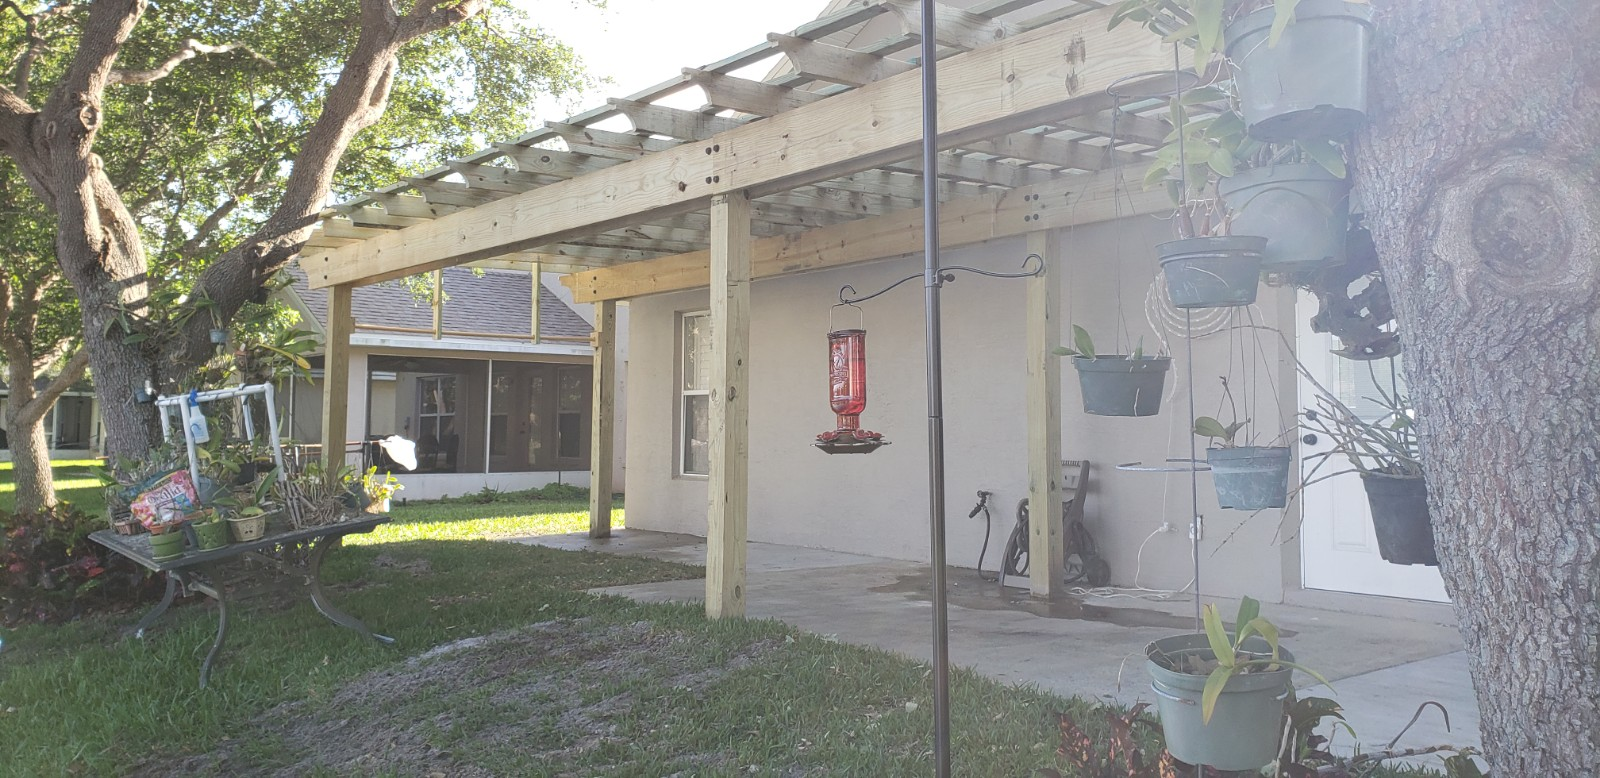 Fencing Contractor, Woodworking Services Kissimmee, FL